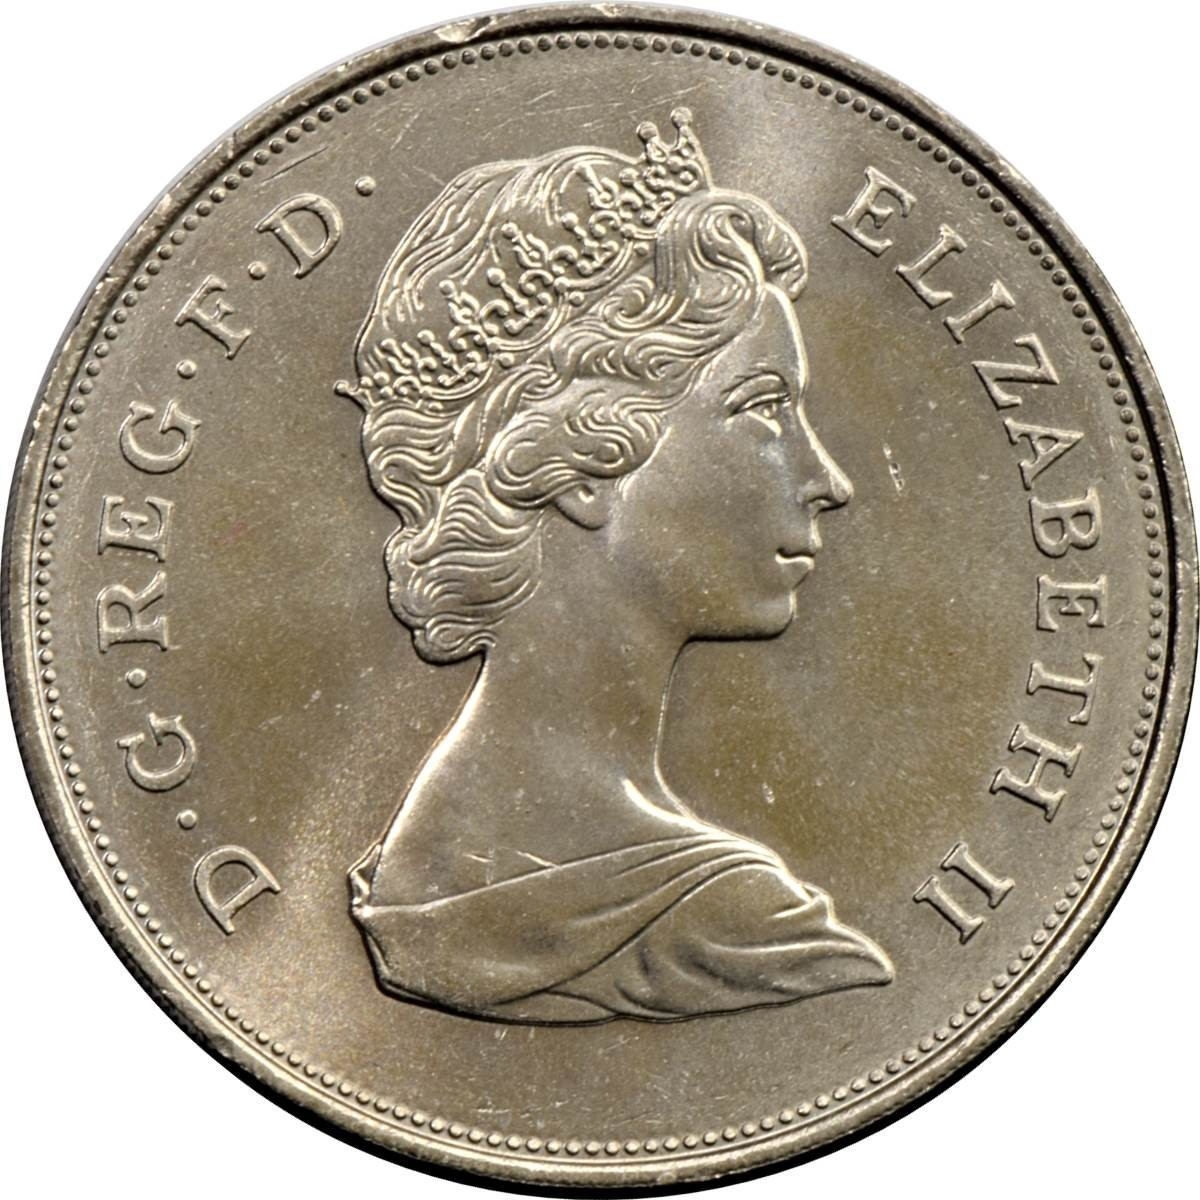 British 1 Crown (Queen Mother 80th Birthday 1980)